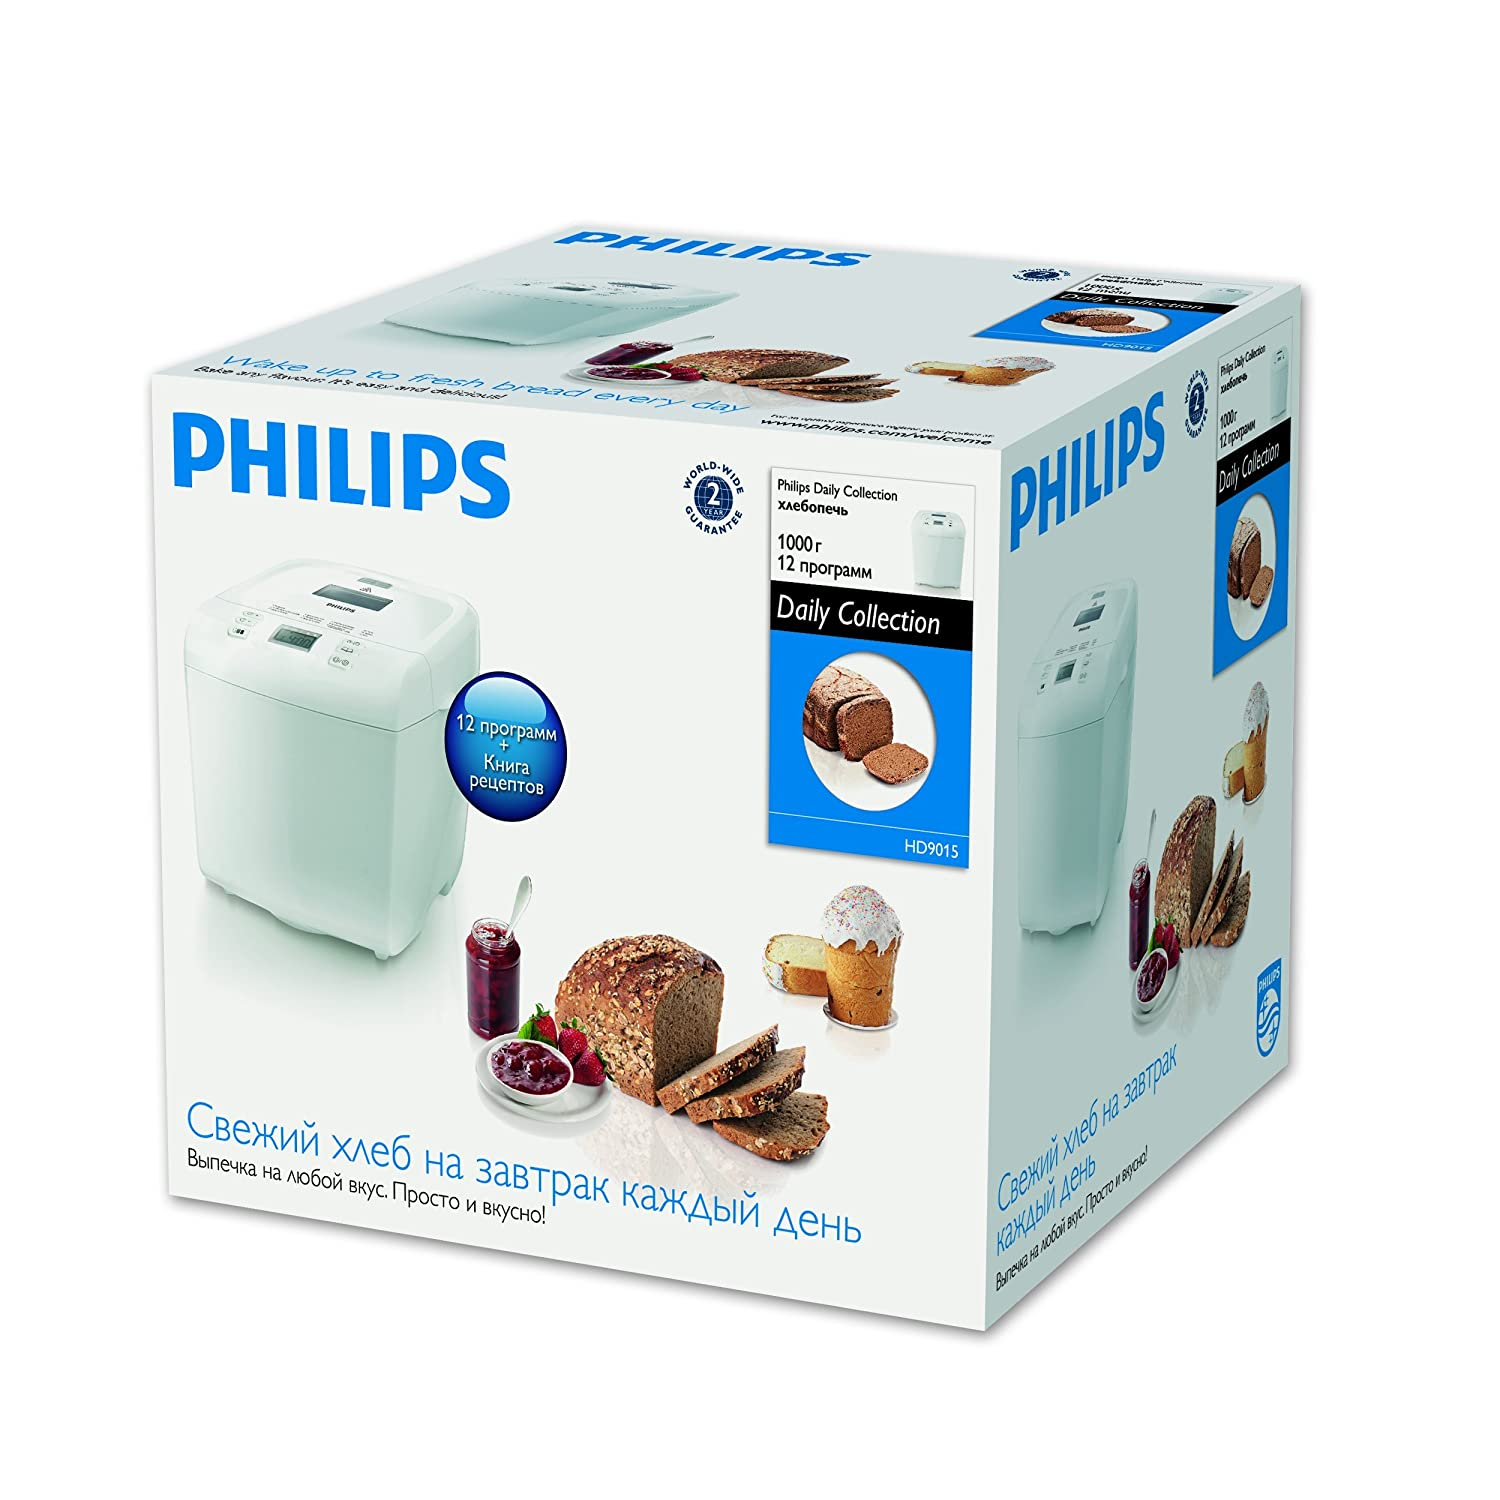 Philips HD9015 - Panificadora, con pantalla LCD, color blanco: Amazon.es: Hogar